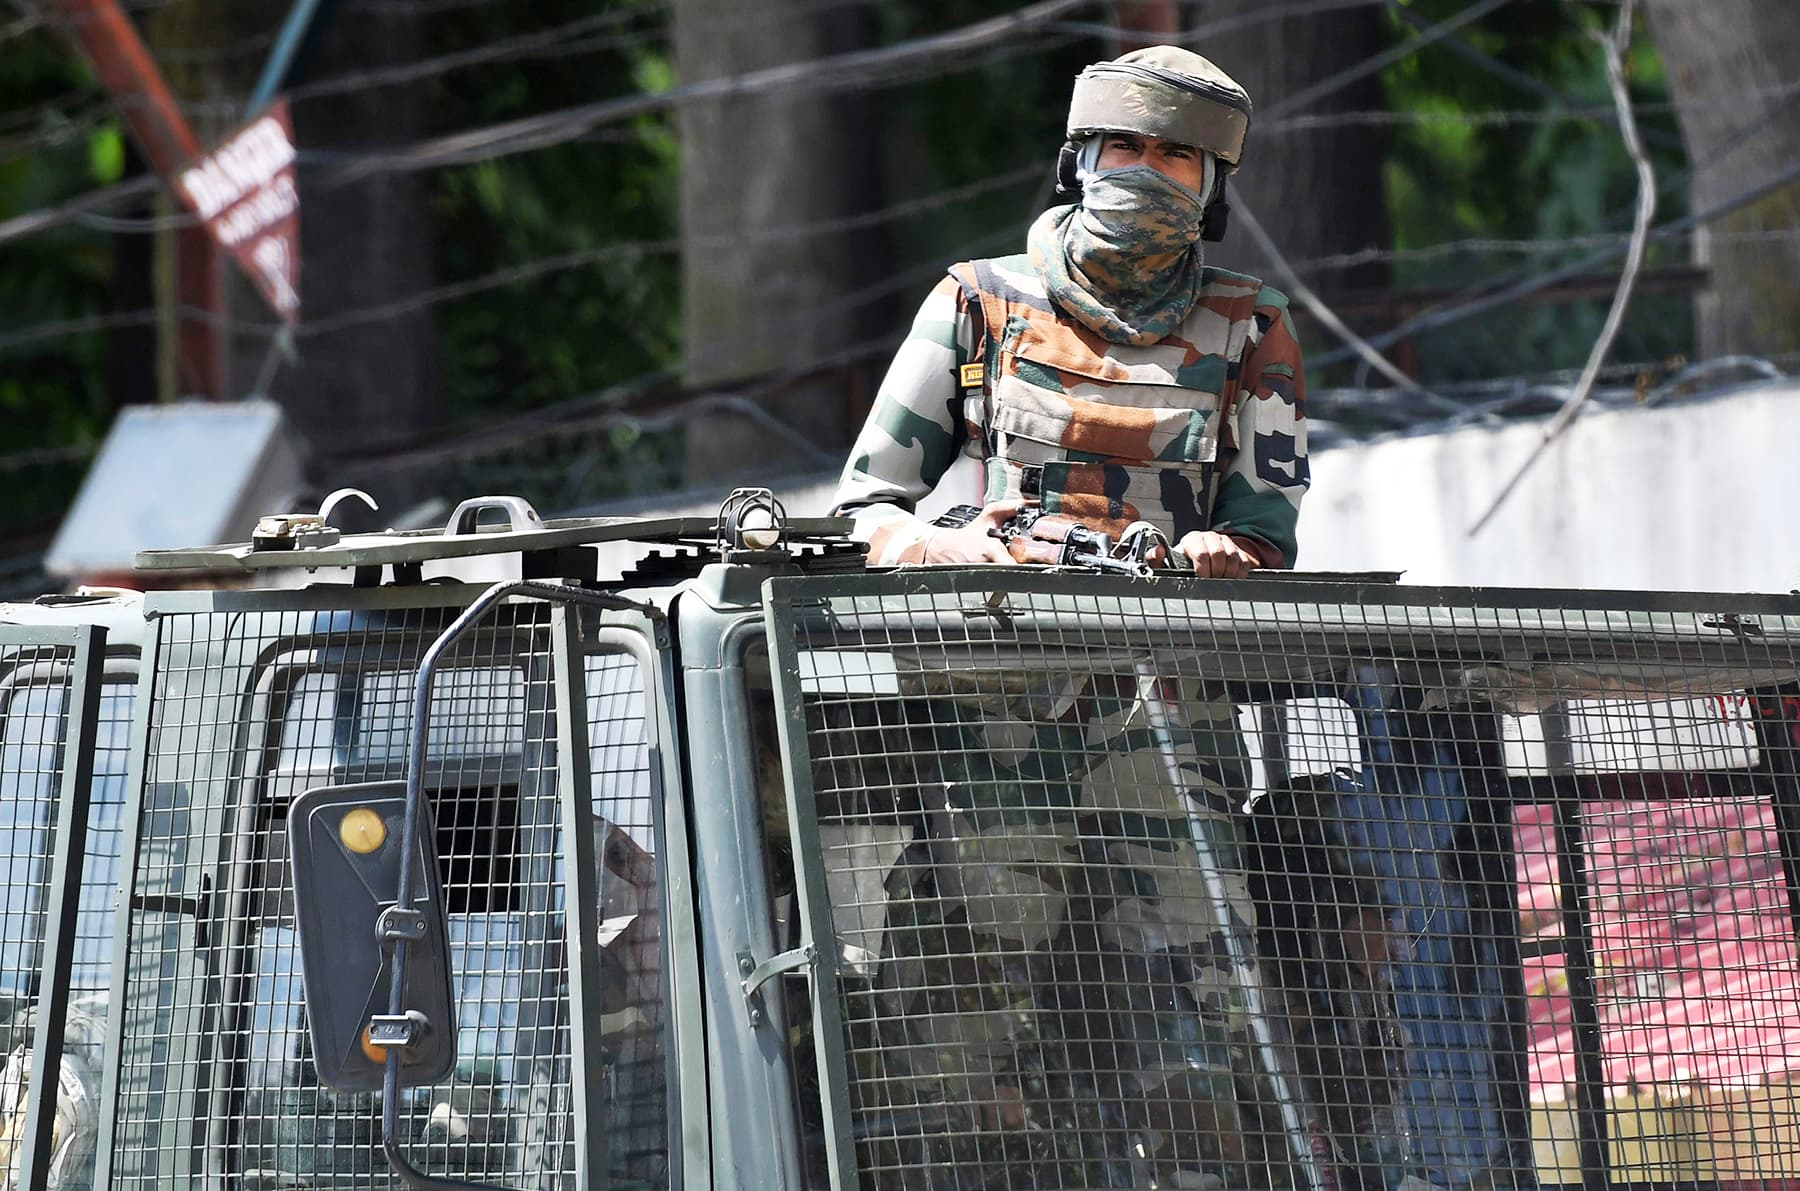 In this photo taken on August 18, an Indian army soldier stands alert in a truck while travelling in a convoy in Srinagar. —AFP